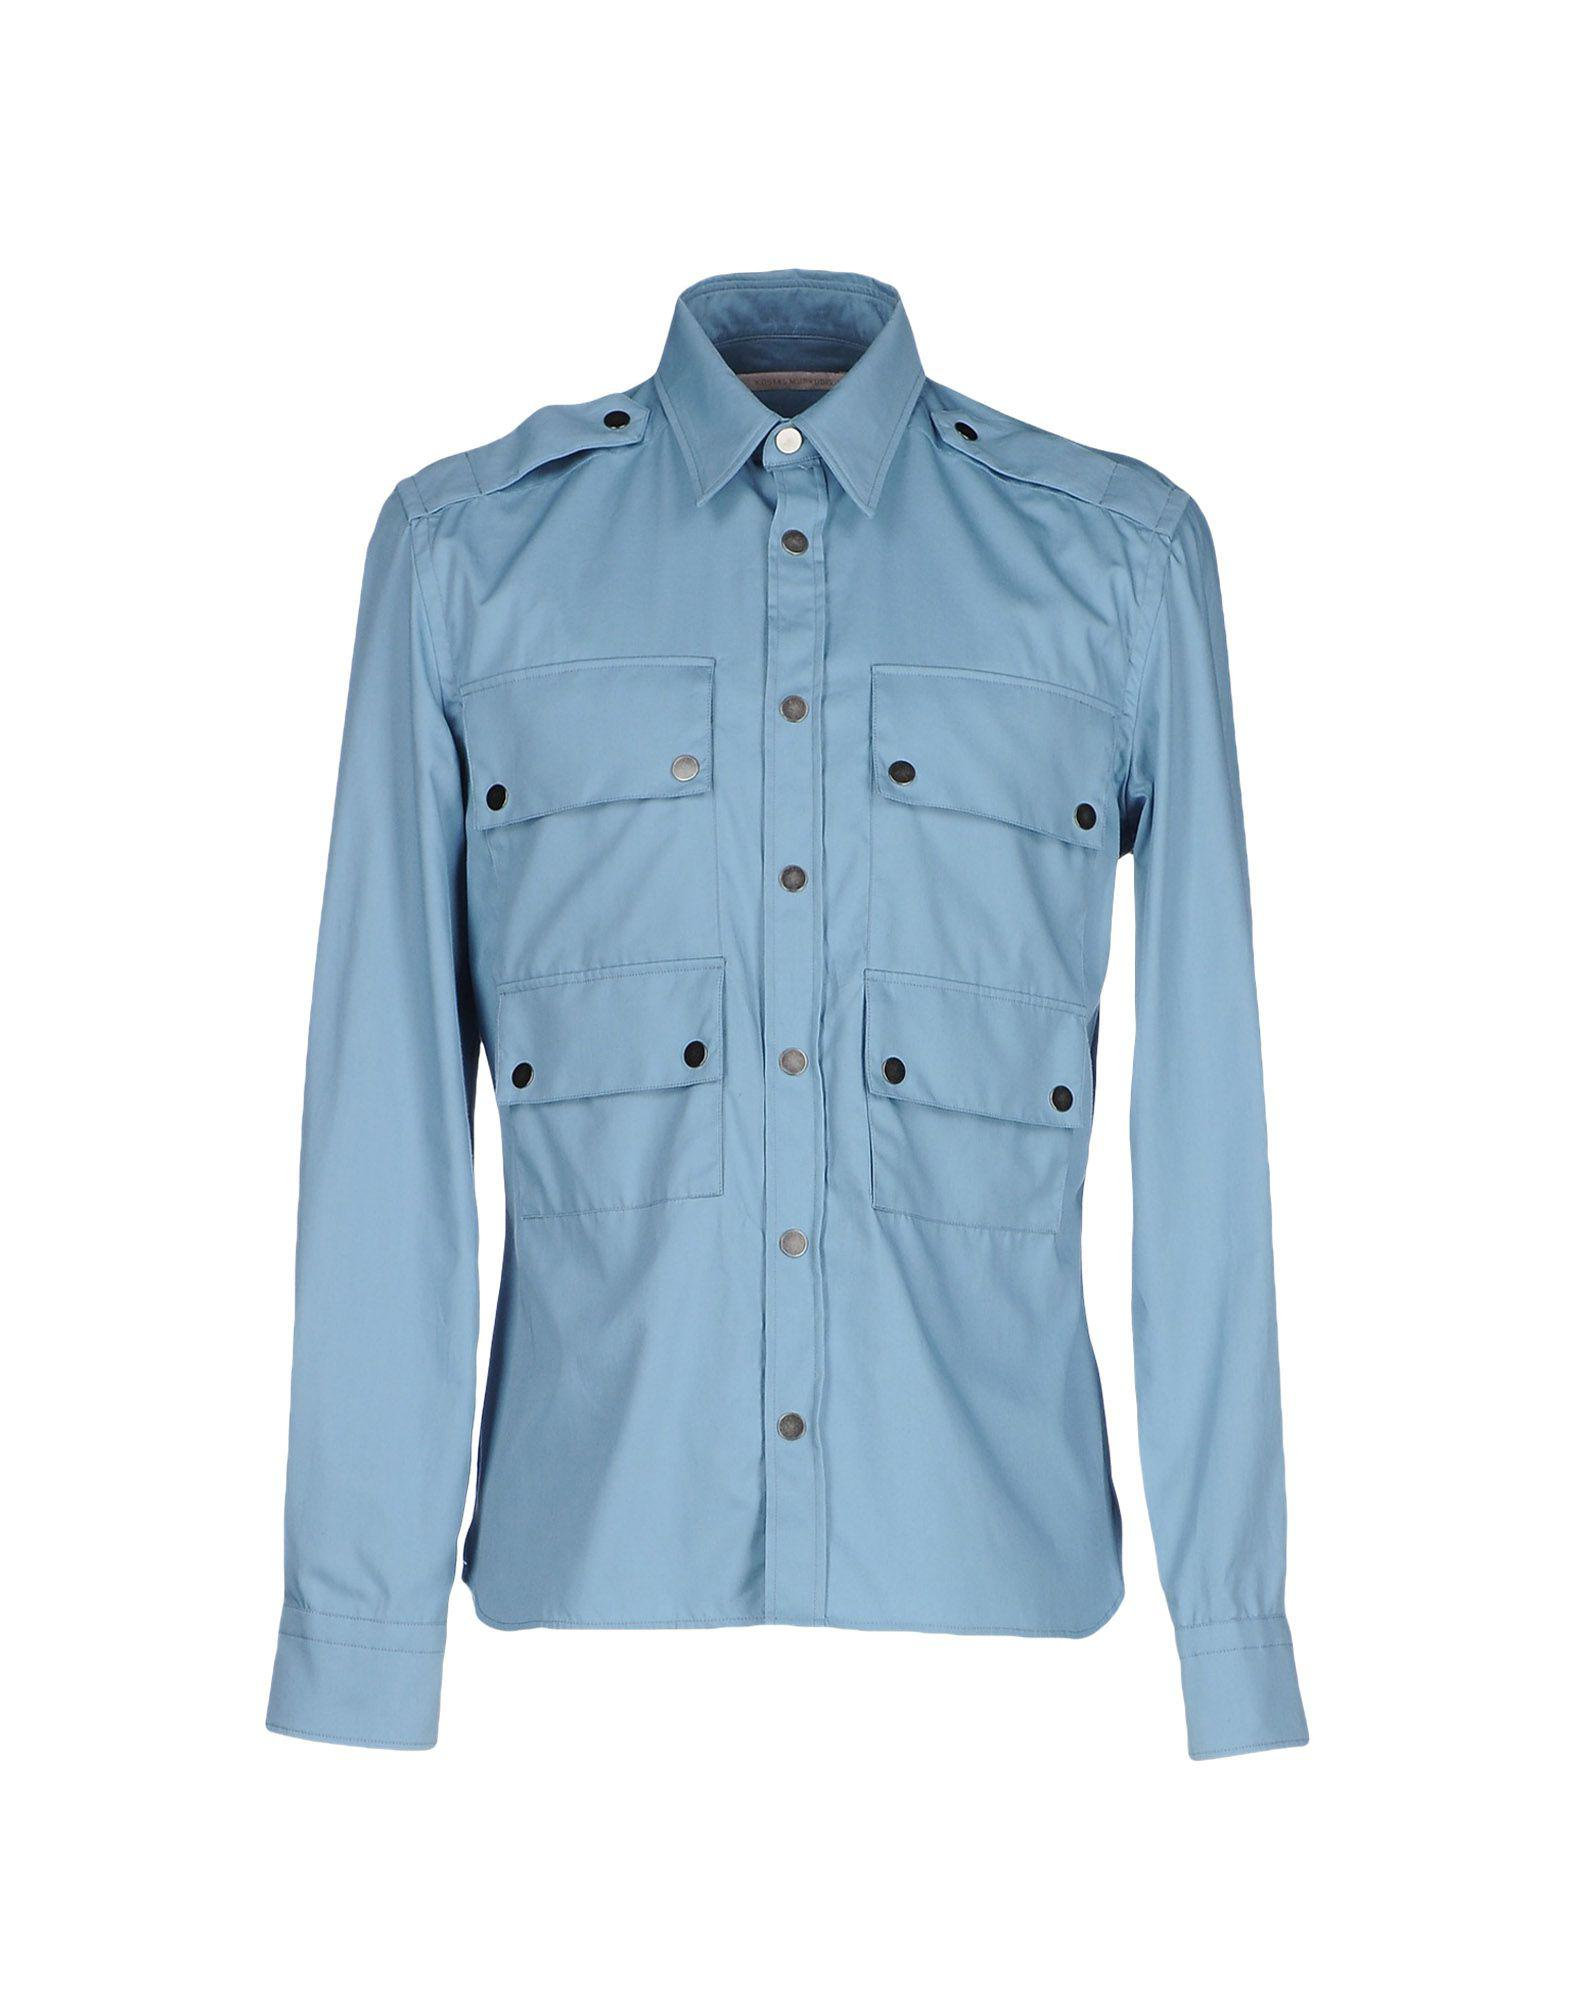 Cheap Price In China Clearance Amazon SHIRTS - Shirts Kostas Murkudis Cheap Sale 2018 Unisex Eastbay Online Cheap Shop Offer ECwDOQ386f